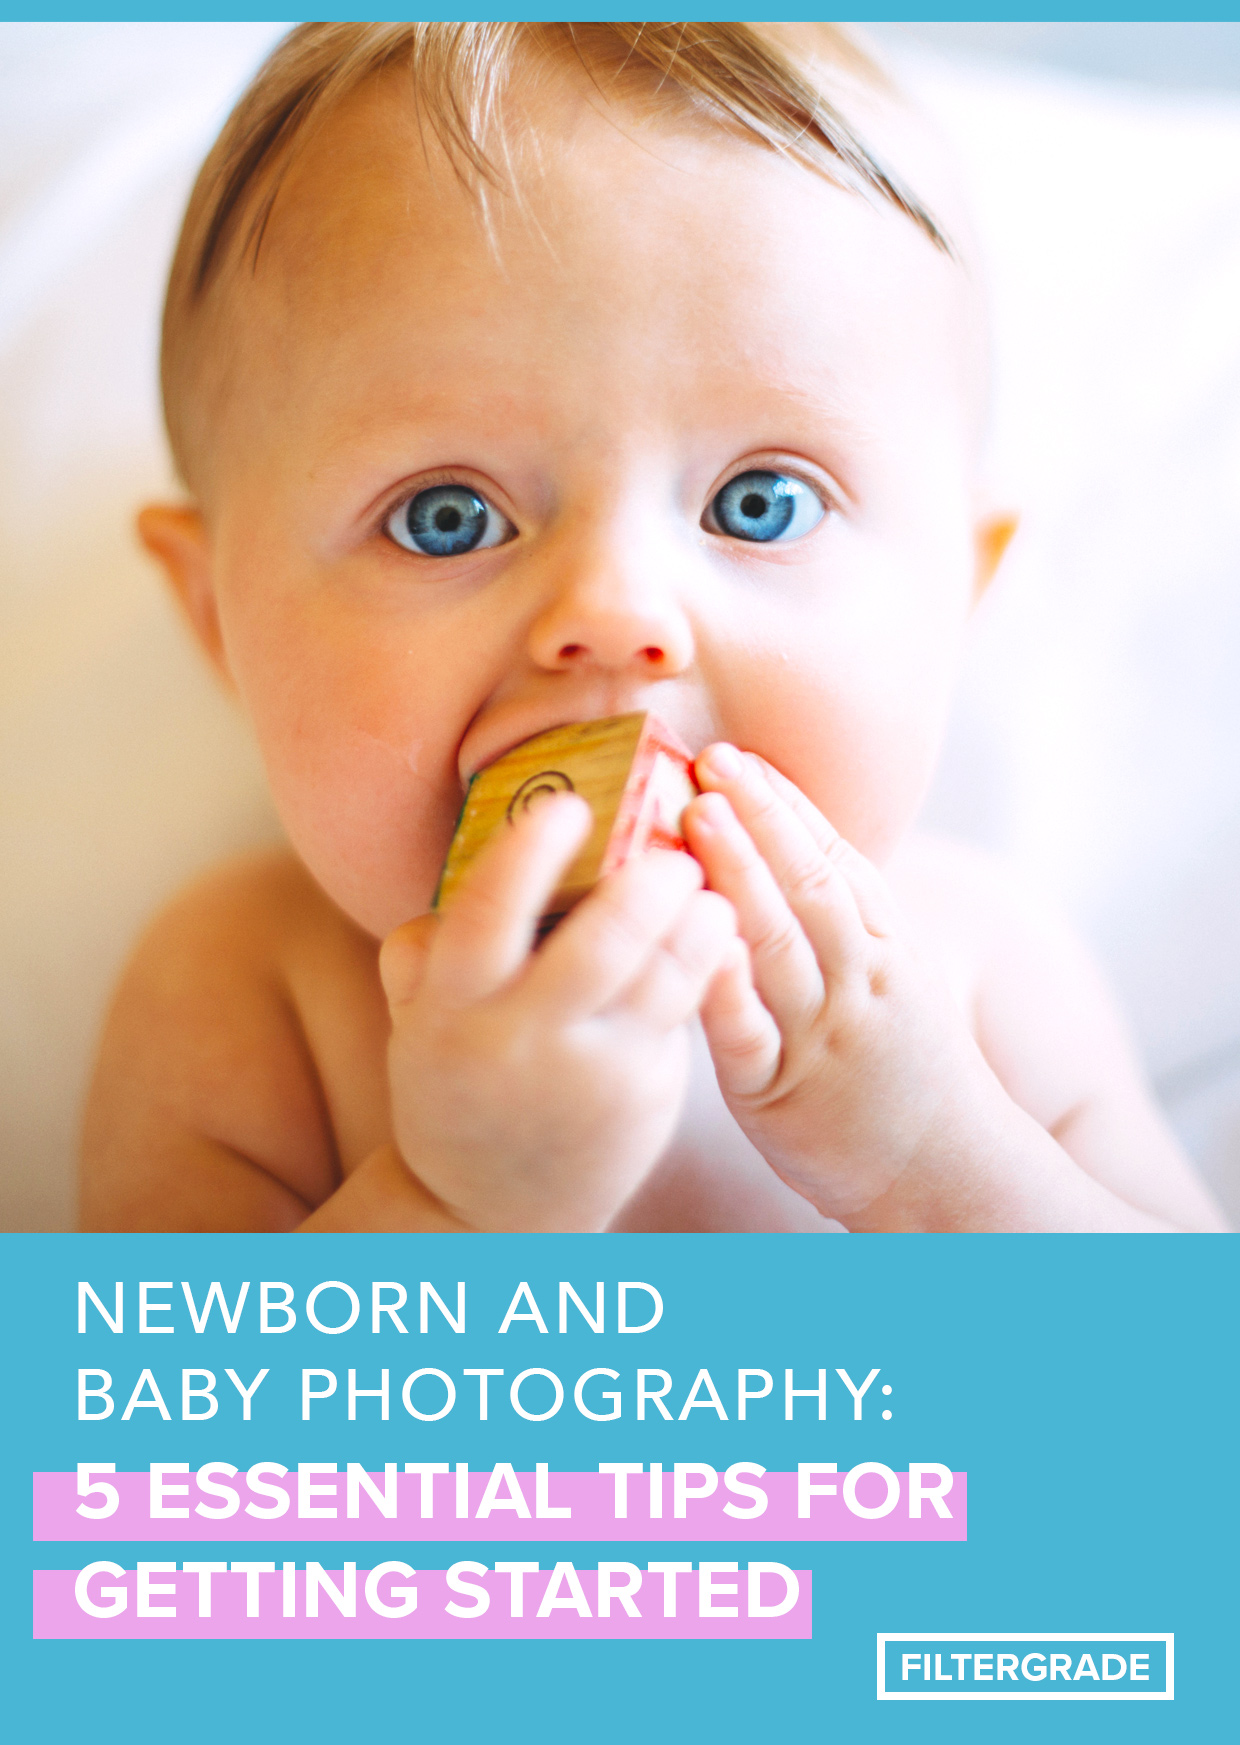 Essential newborn and baby photography tips for capturing those special moments.